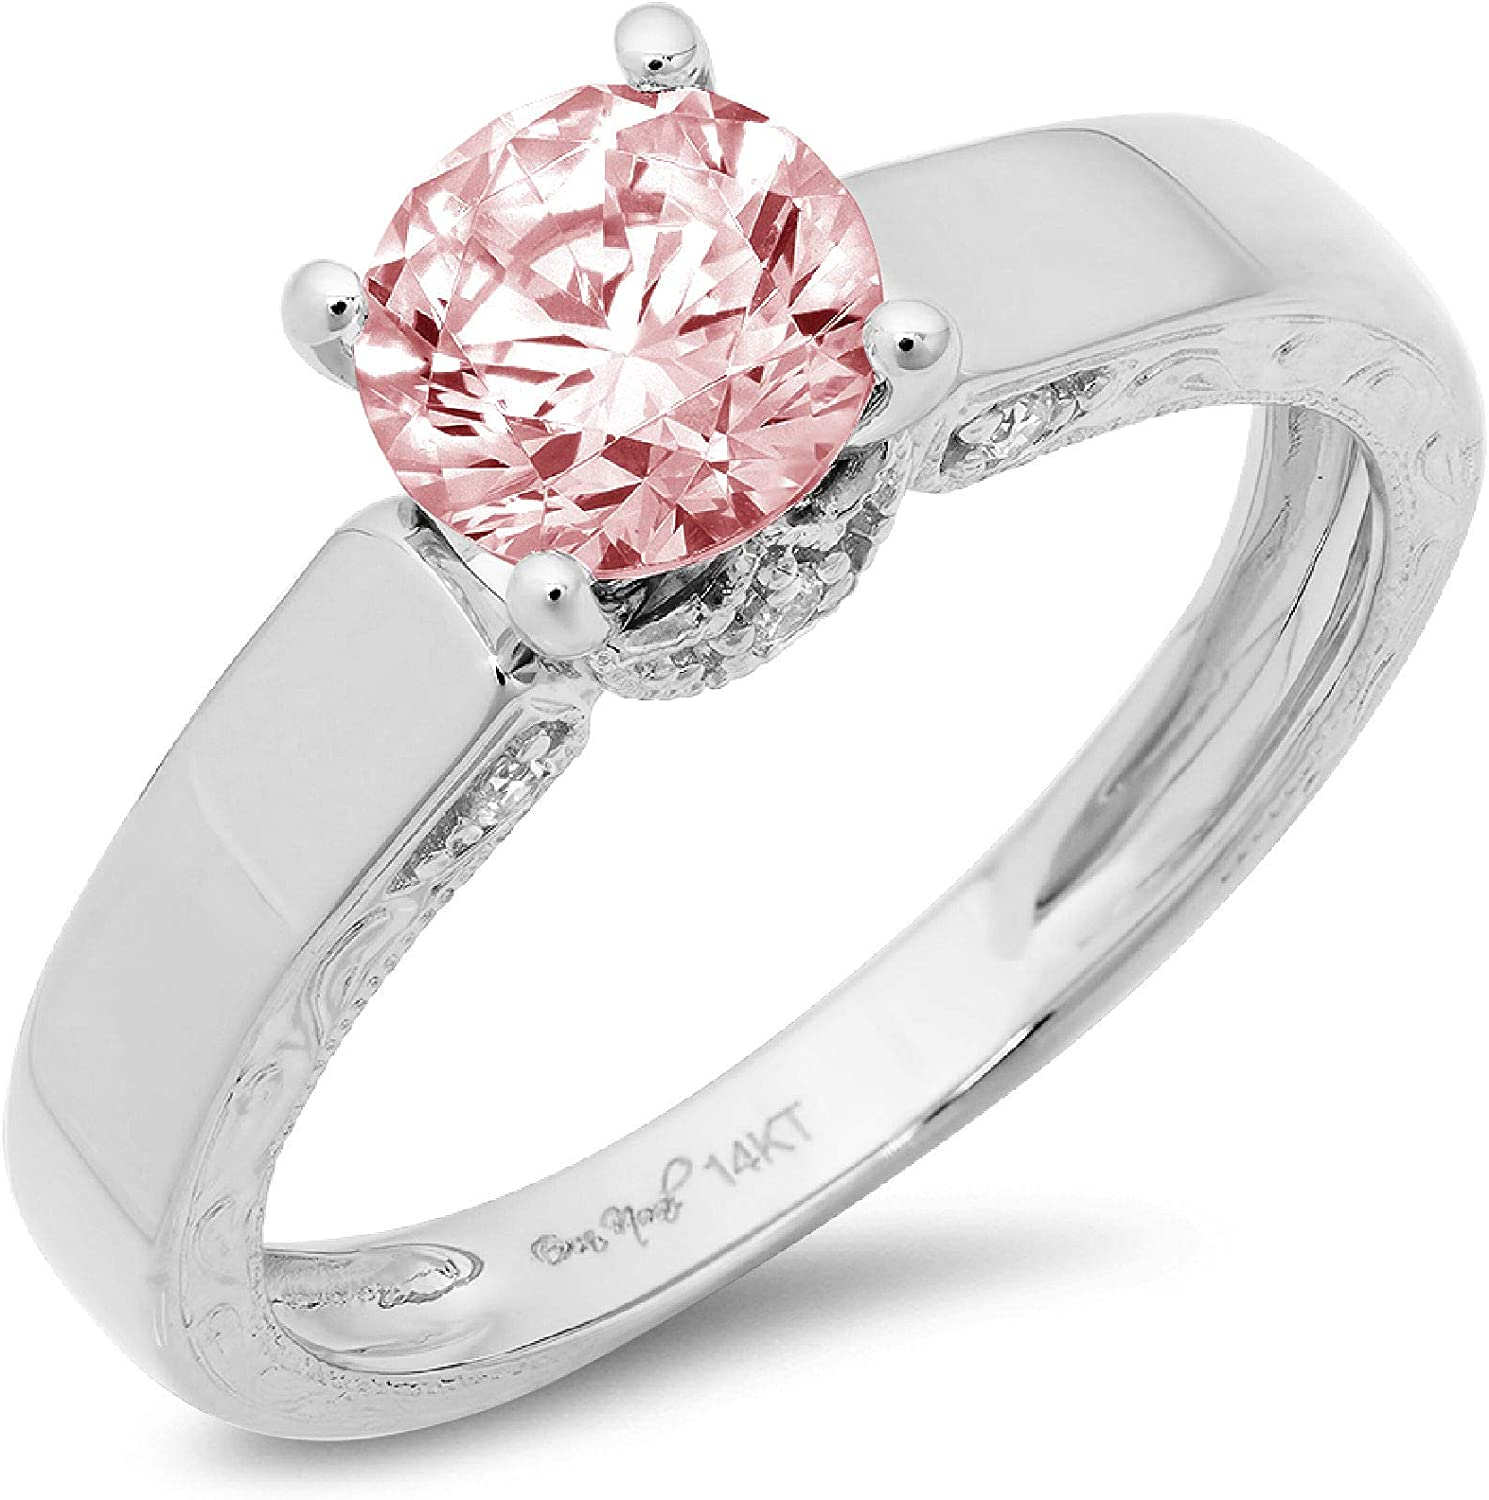 1.70ct Brilliant Round Cut Solitaire Genuine Flawless Pink Simulated Diamond Gemstone Engagement Promise Anniversary Bridal Wedding Accent Ring Solid 18K White Gold